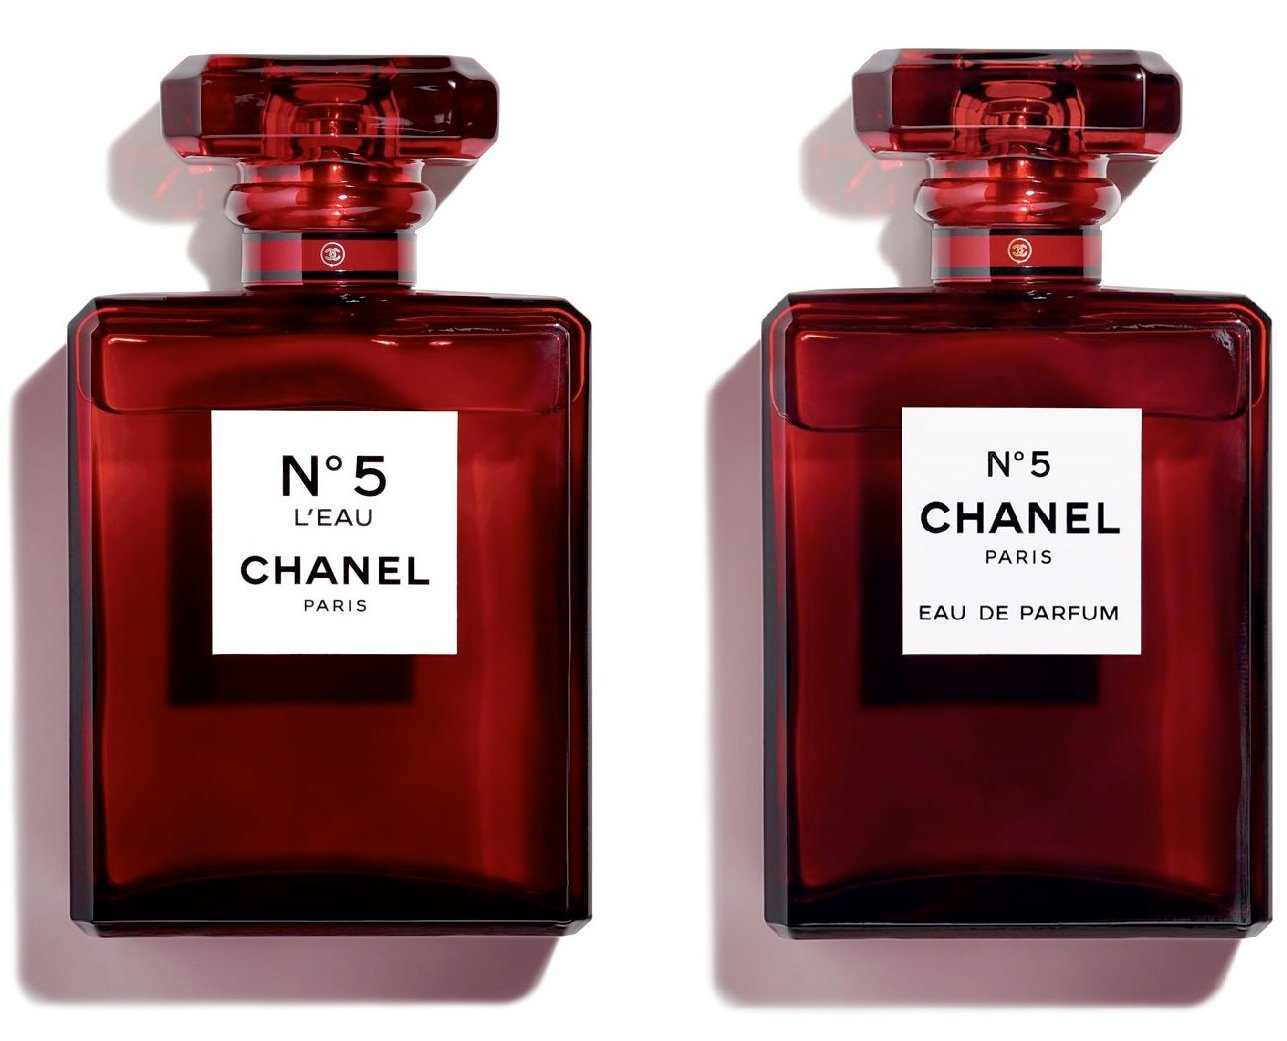 chanel-no-5-red-editions-perfume-6-1536658986